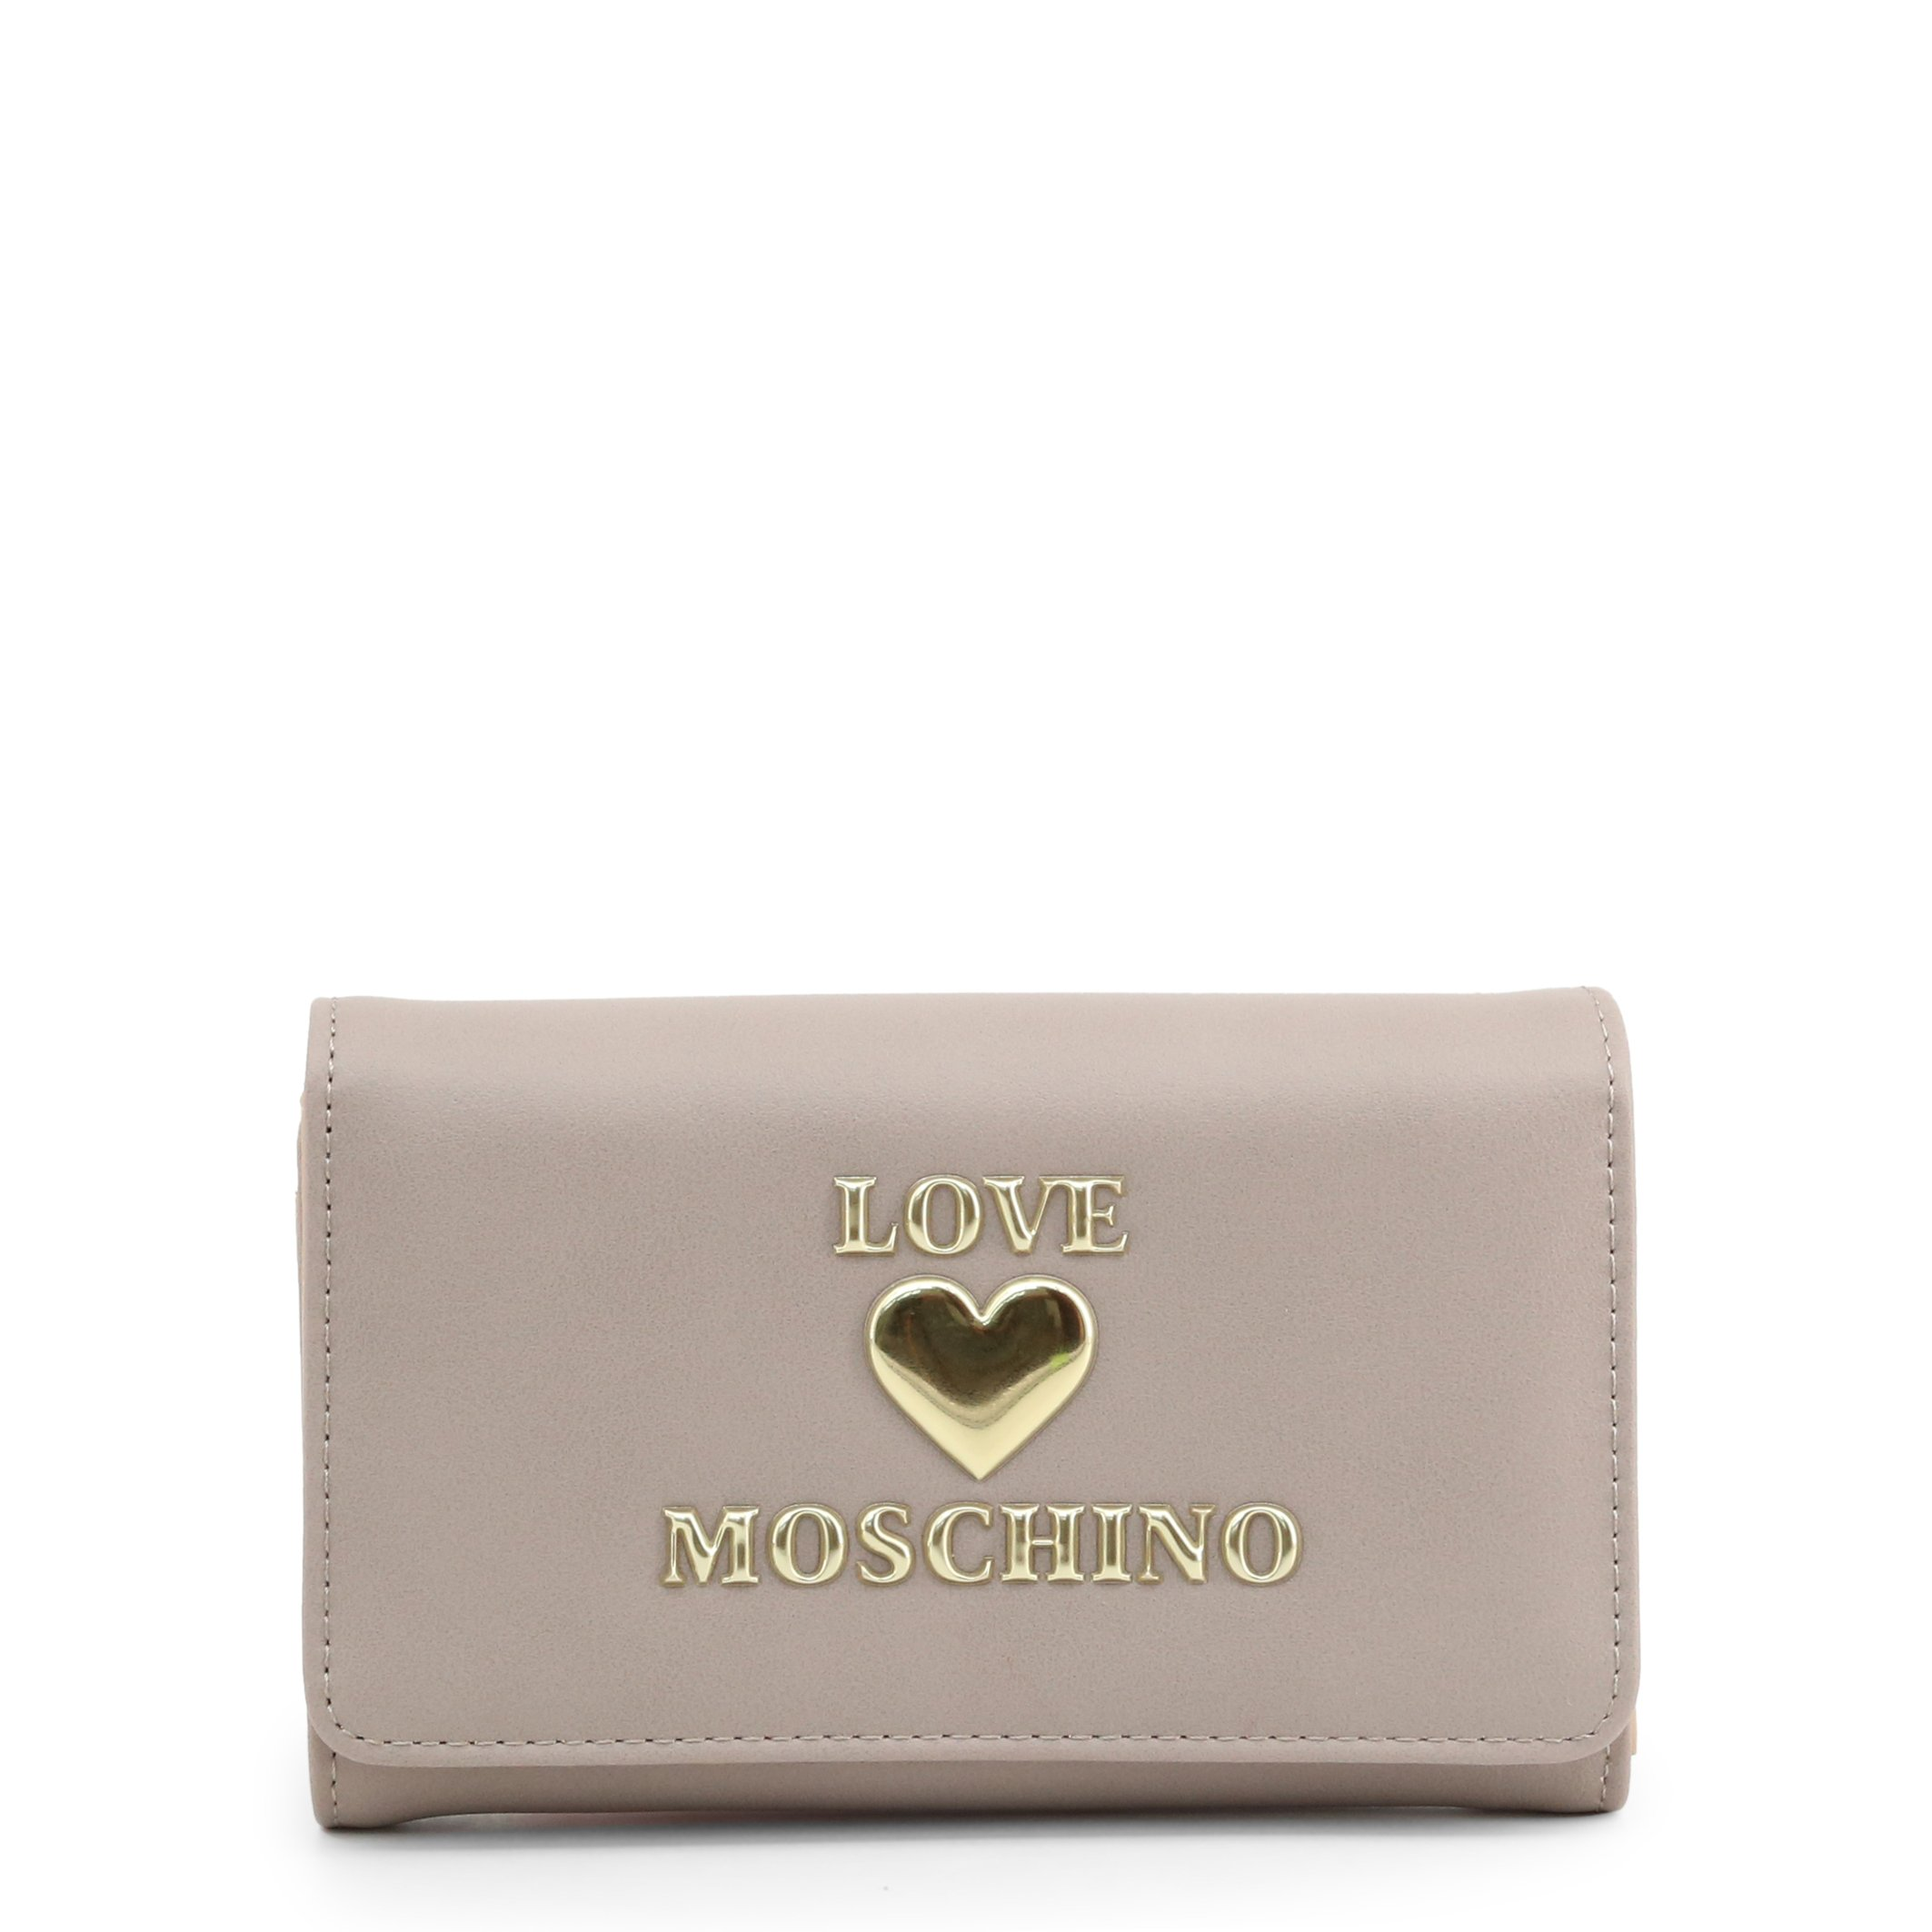 Love Moschino Women's Wallet Various Colours JC5607PP1BLE - brown NOSIZE